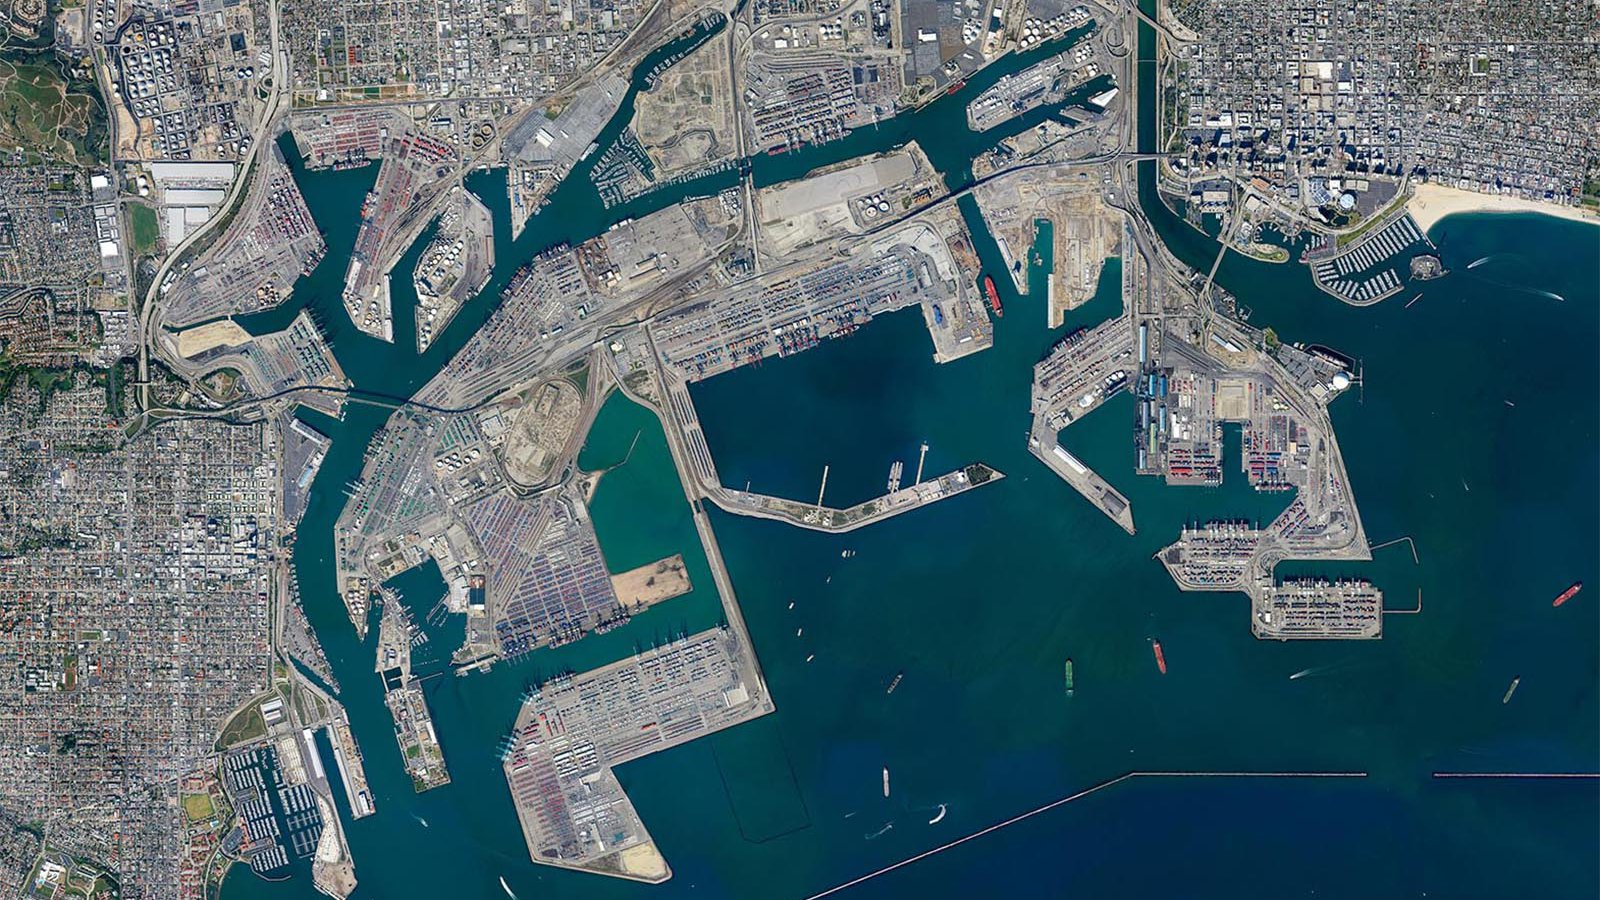 Mapping orthomosaic of the Port of Los Angeles (PoLA) and Port of Long Beach (PoLB)